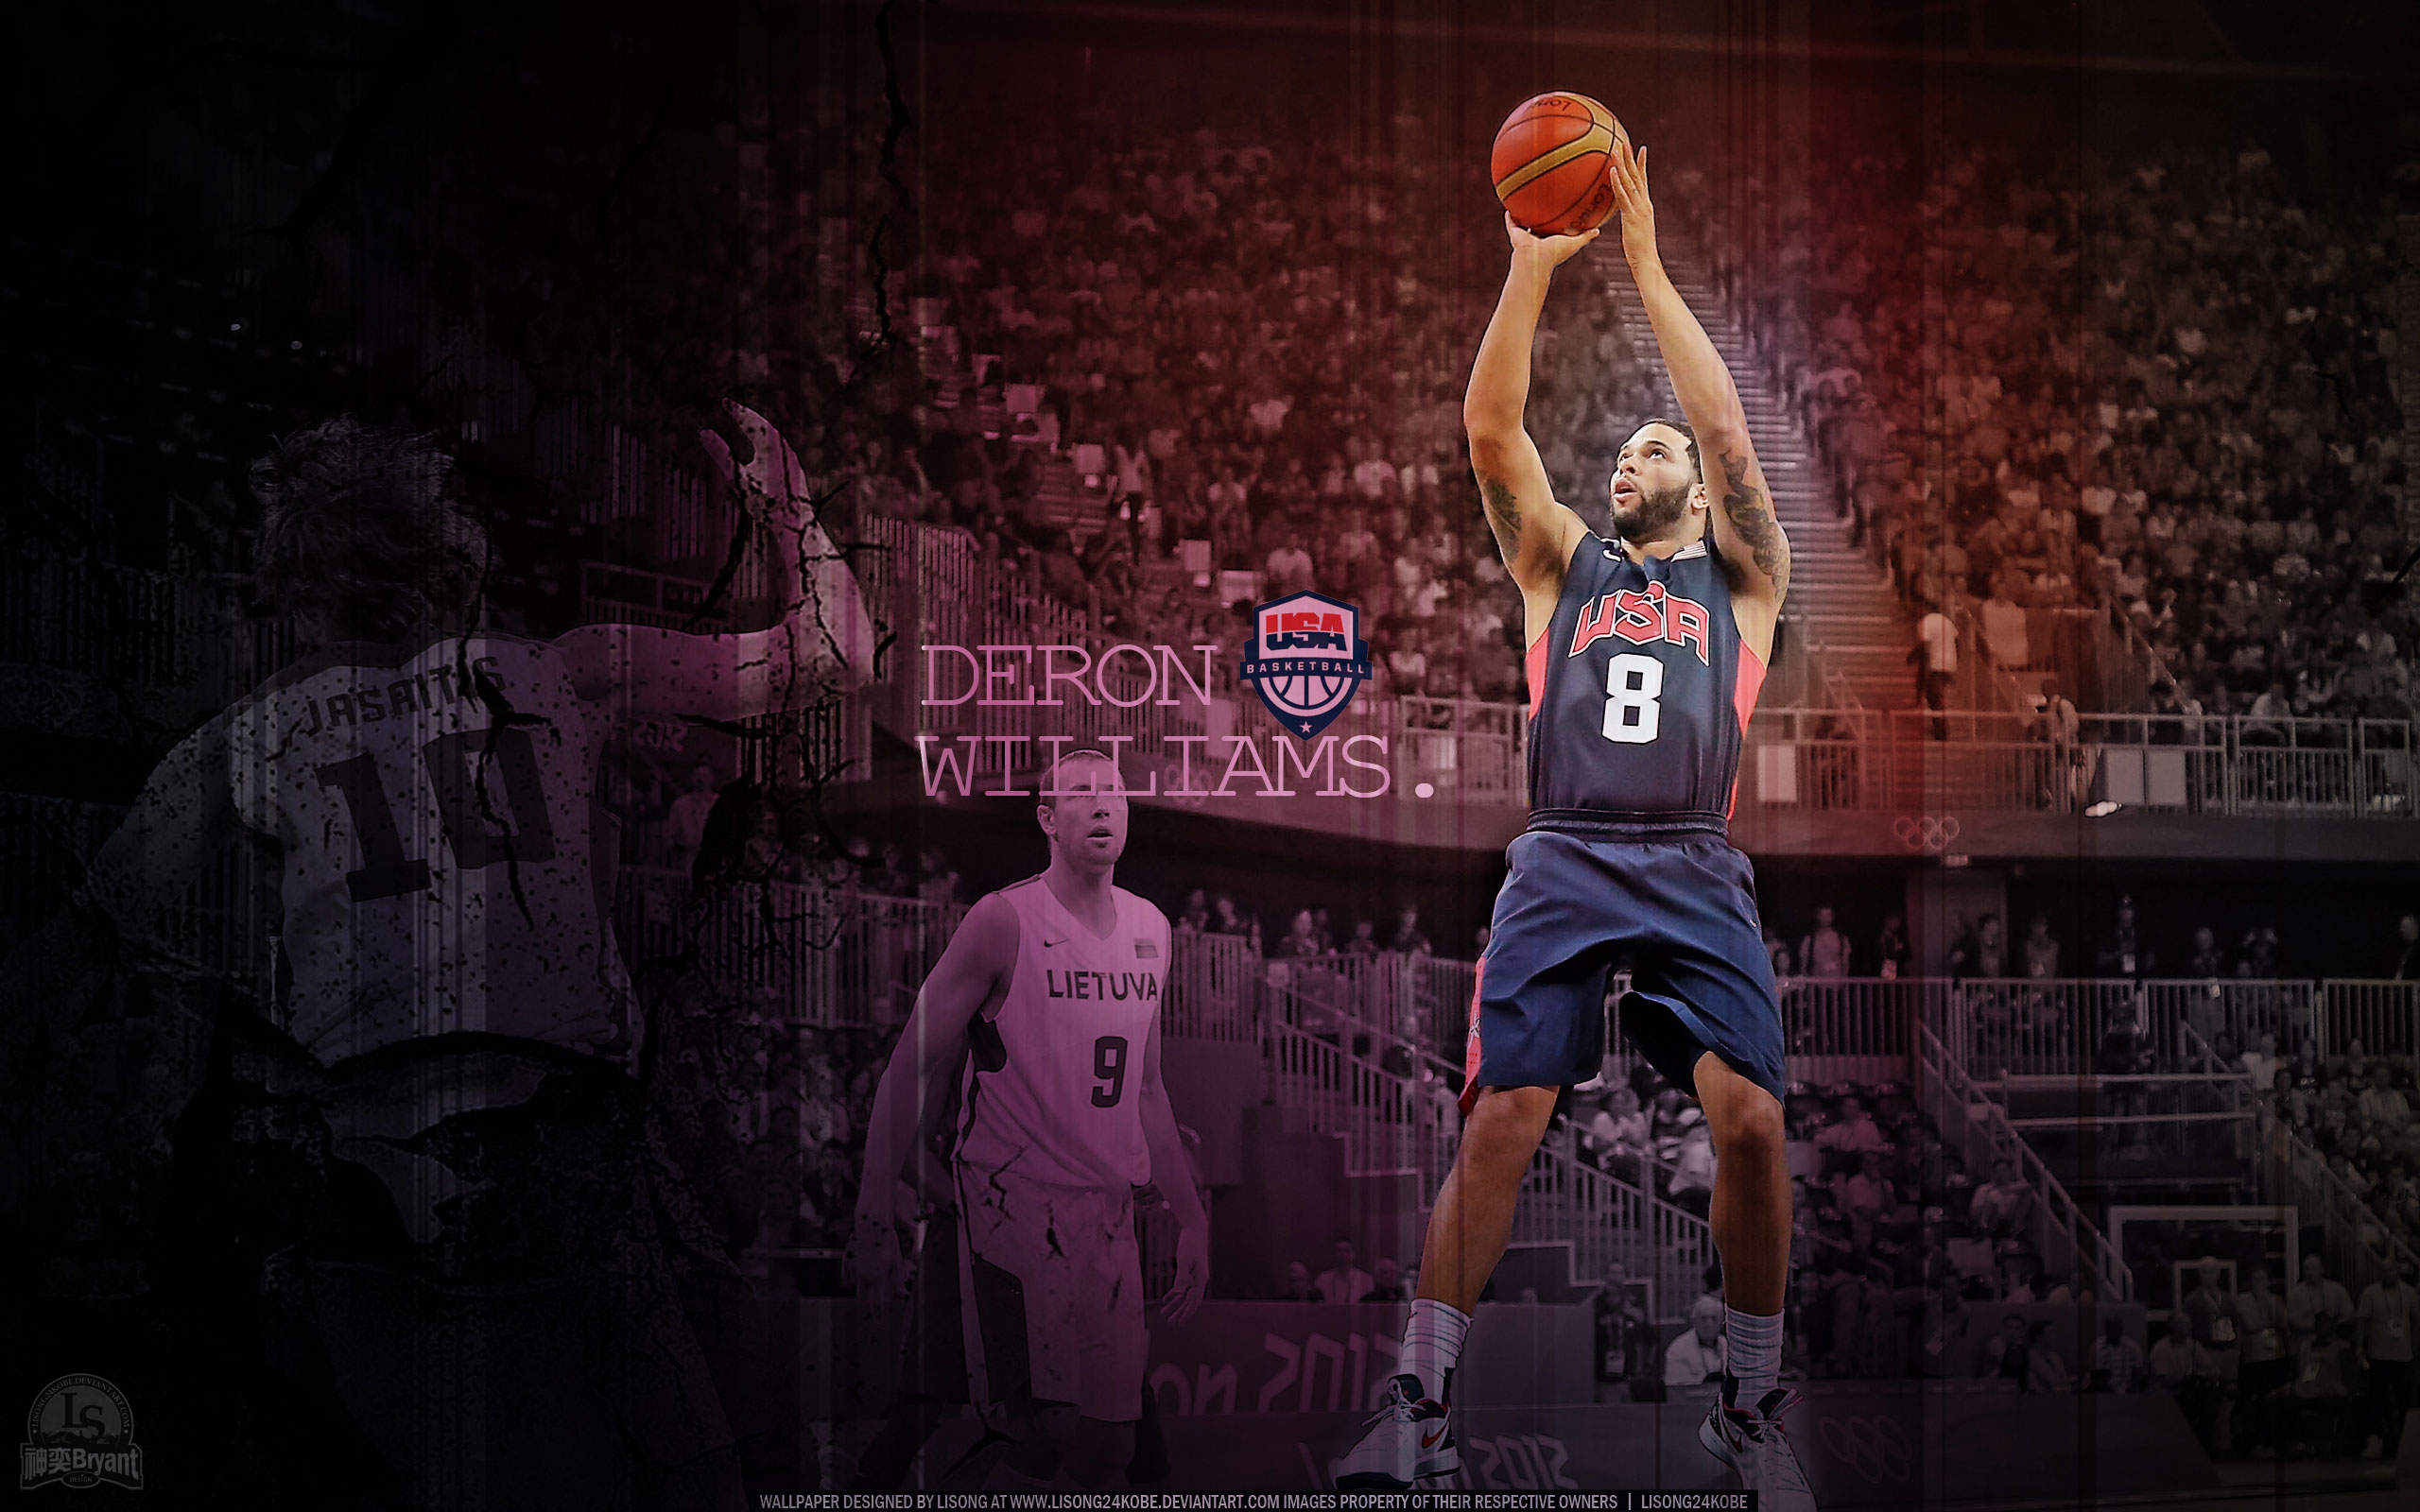 http://www.basketwallpapers.com/Images-11/Deron-Williams-Olympics-2012-vs-Lithuania-2560x1600-Wallpaper-BasketWallpapers.com-.jpg